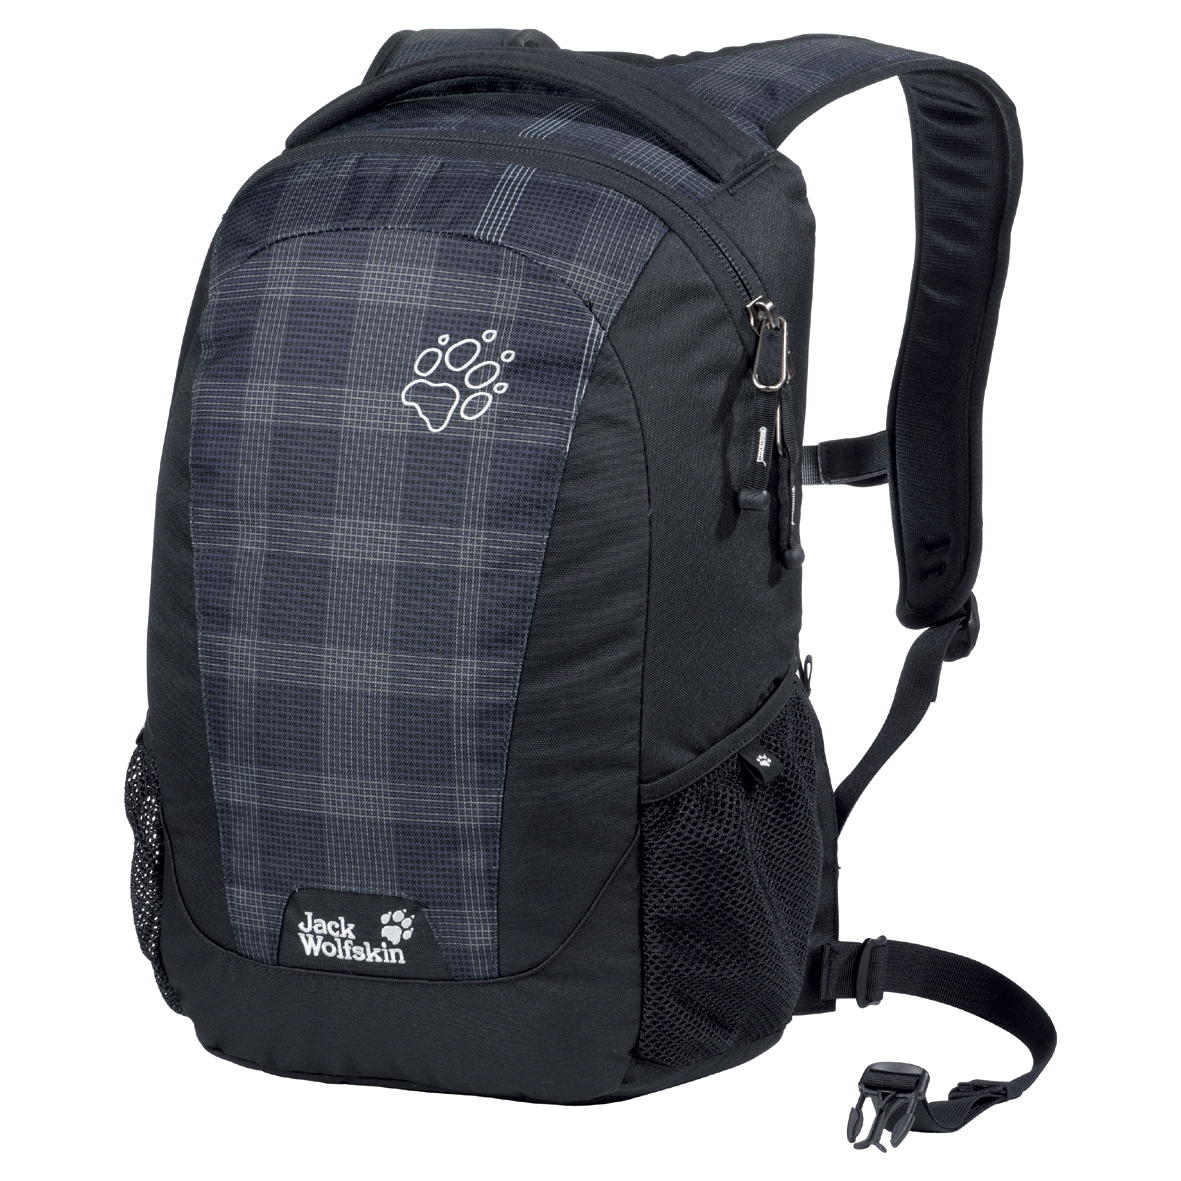 JACK WOLFSKIN INCOGNITO PACK